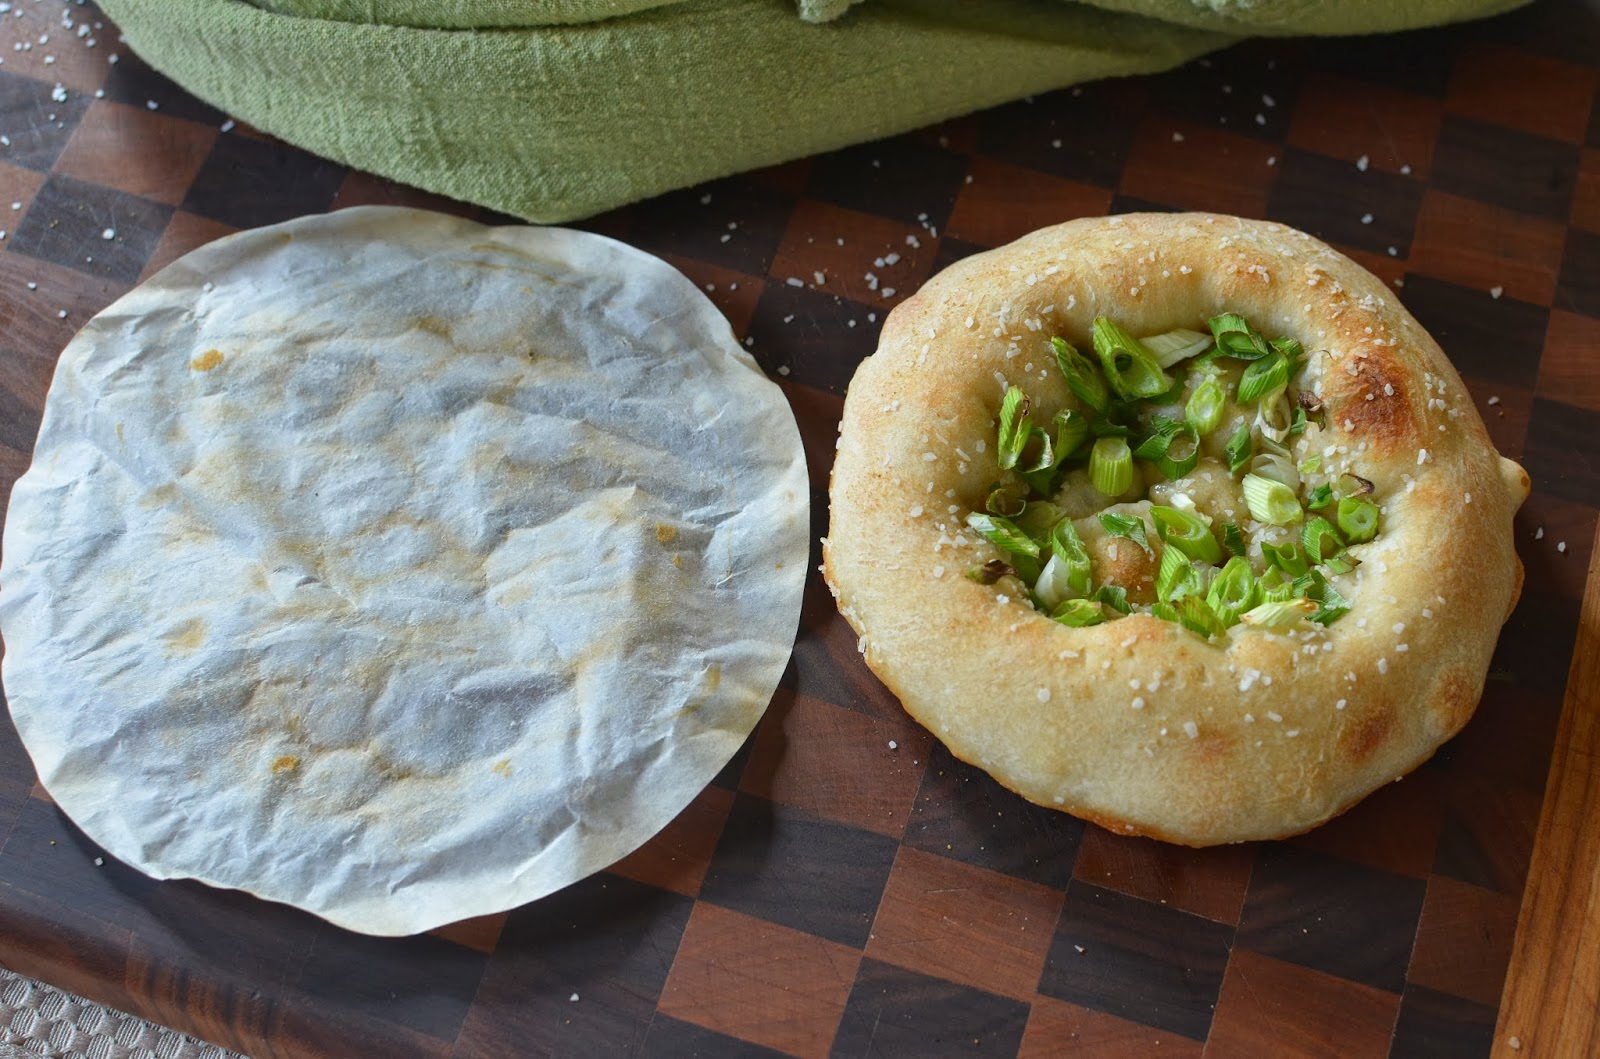 I love using  parchment  when I bake bread - no messy flour or cornmeal burning in my oven